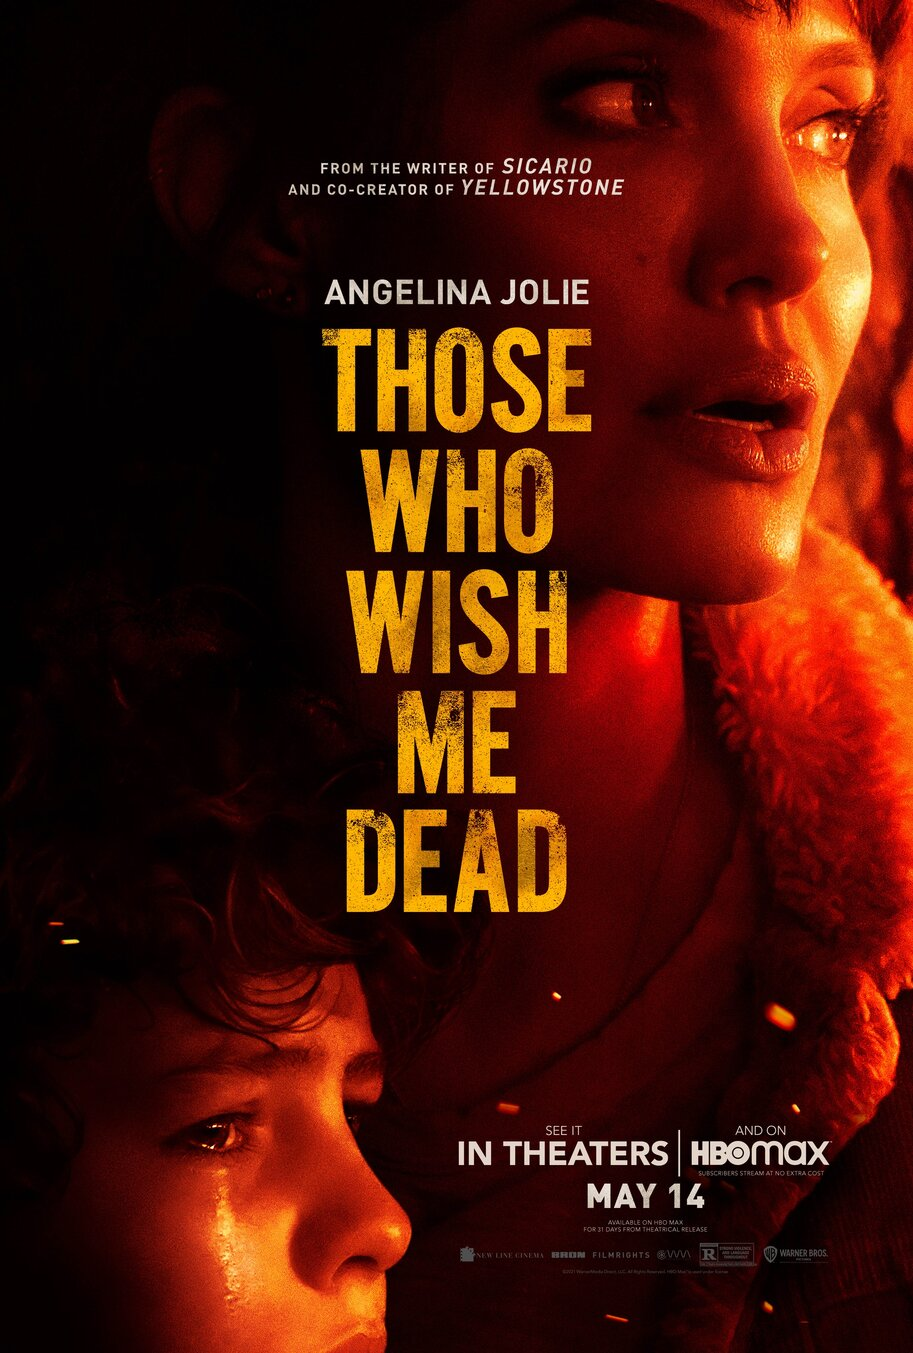 They Want Me Dead Angelina Jolie Poster